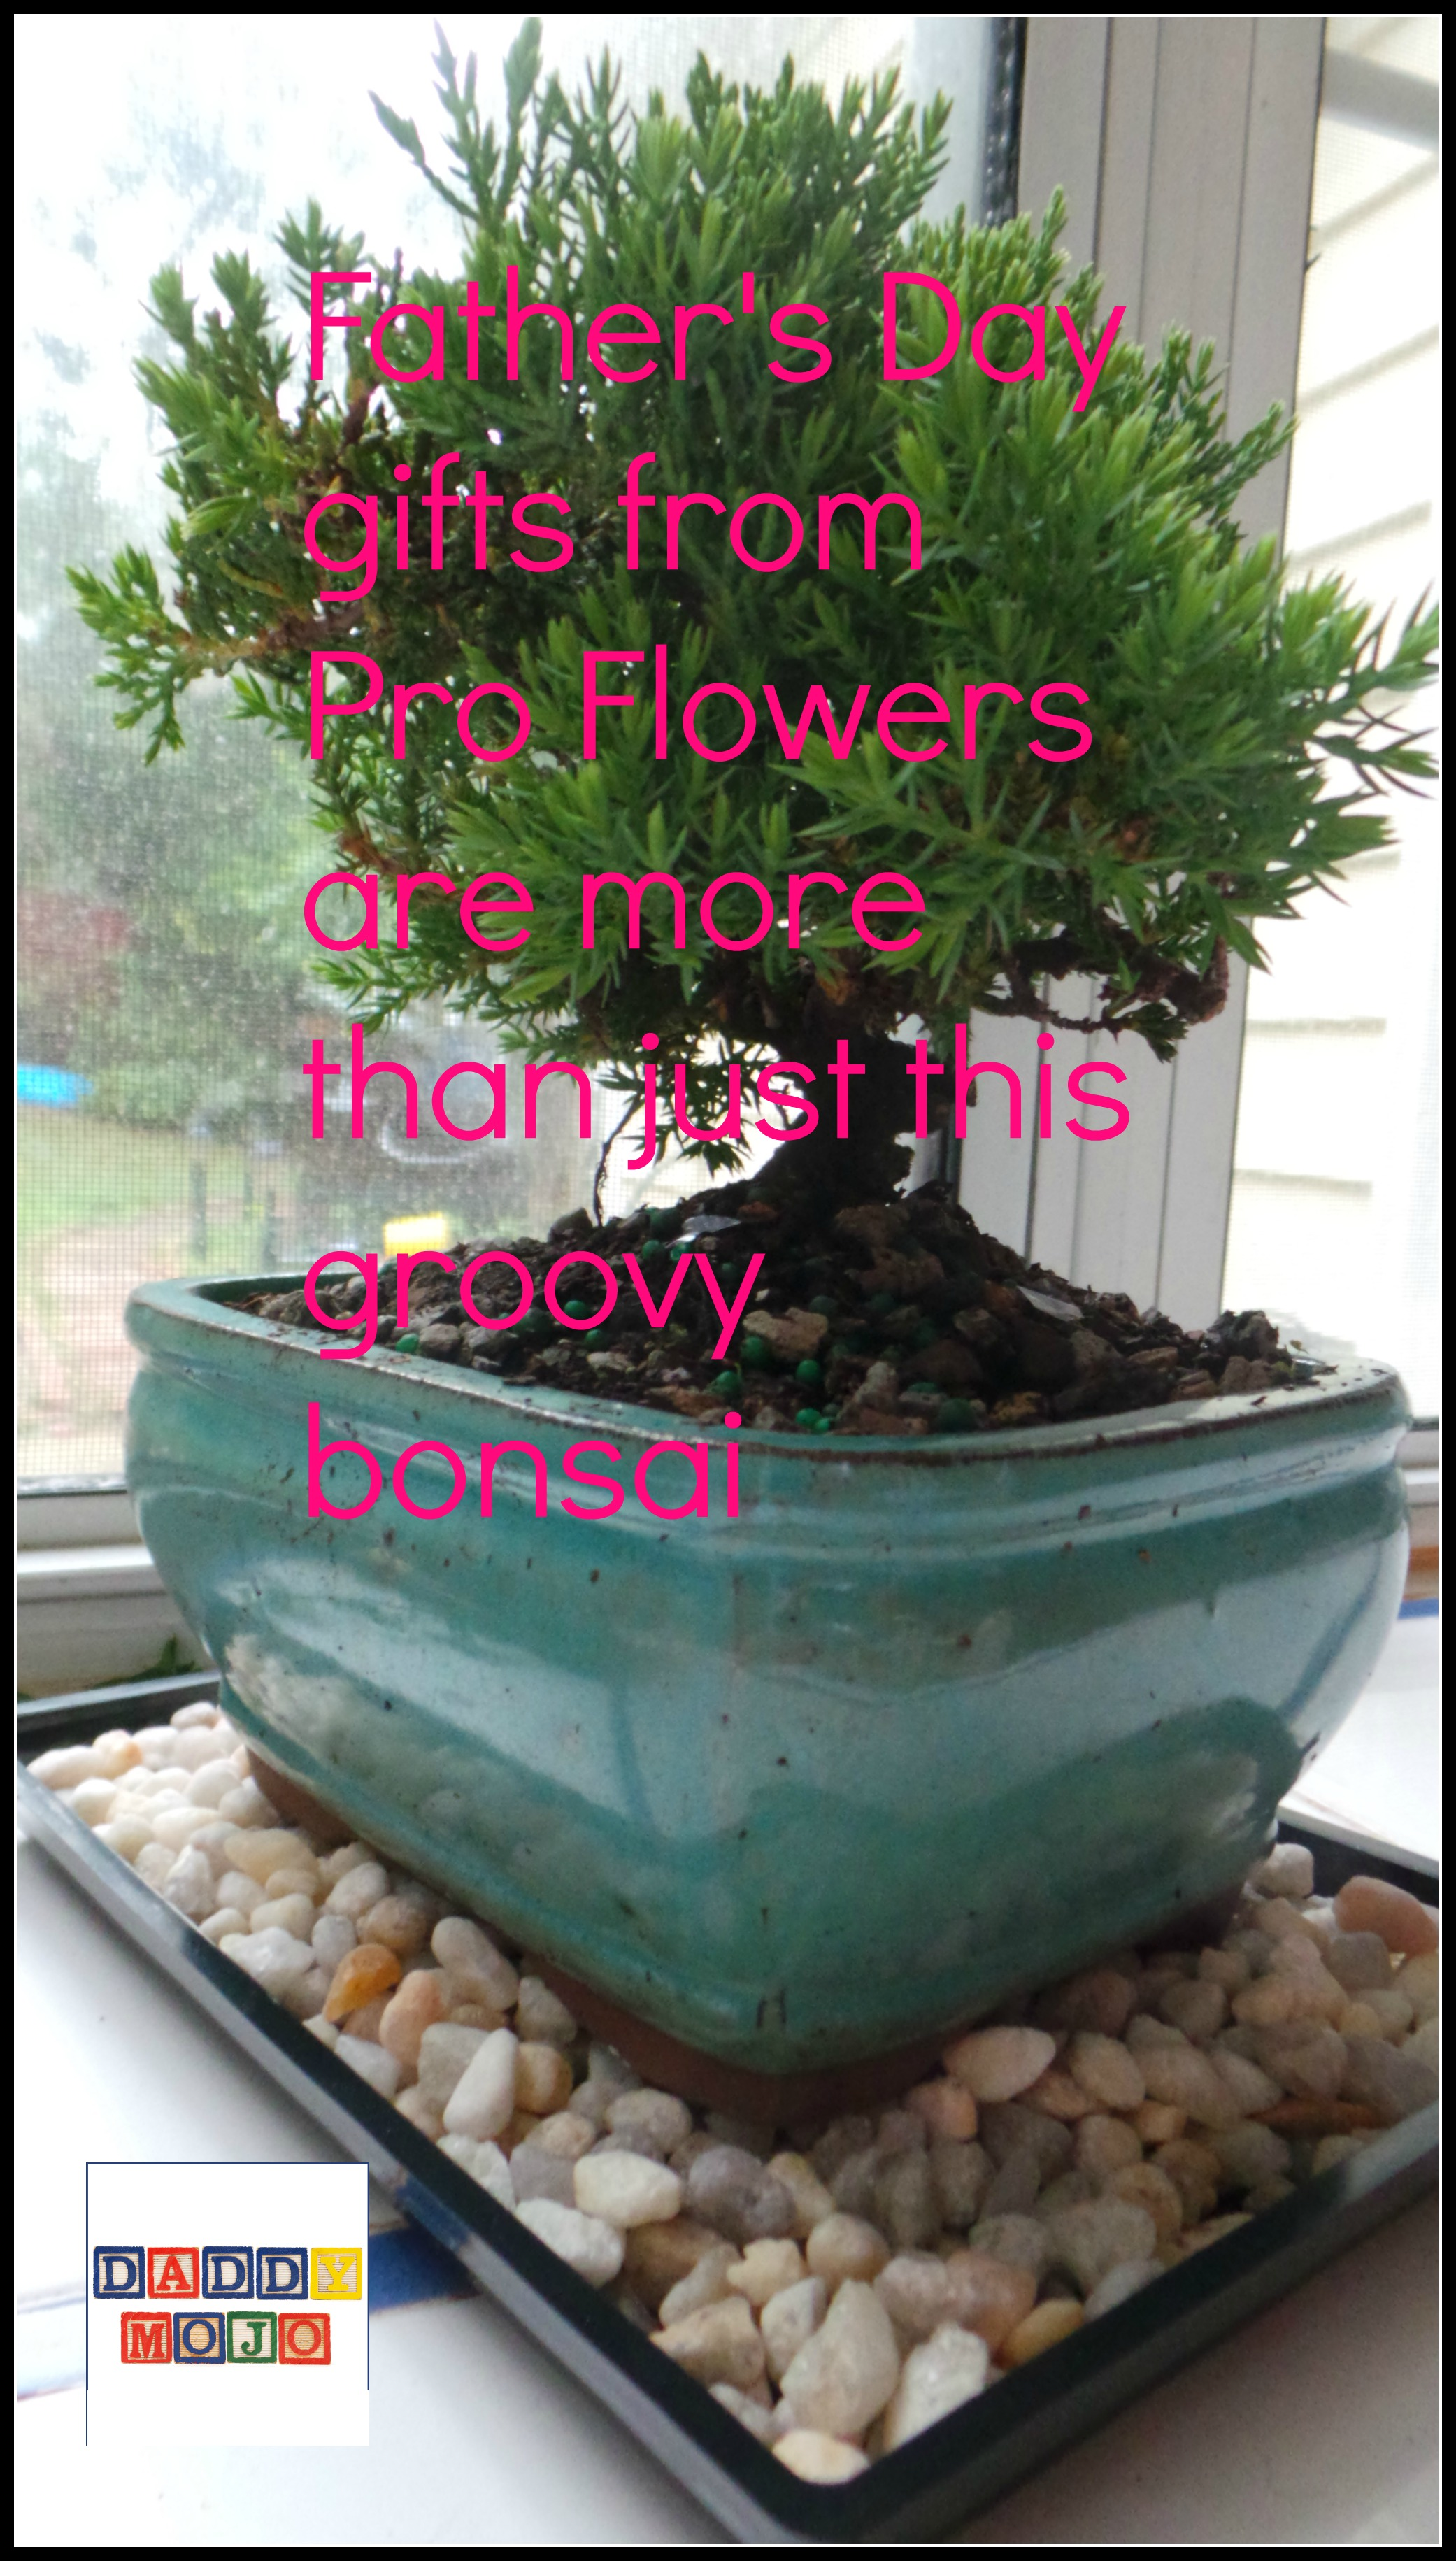 ProFlowers-great gifts dad will enjoy for Father\'s Day #Ad | Daddy Mojo